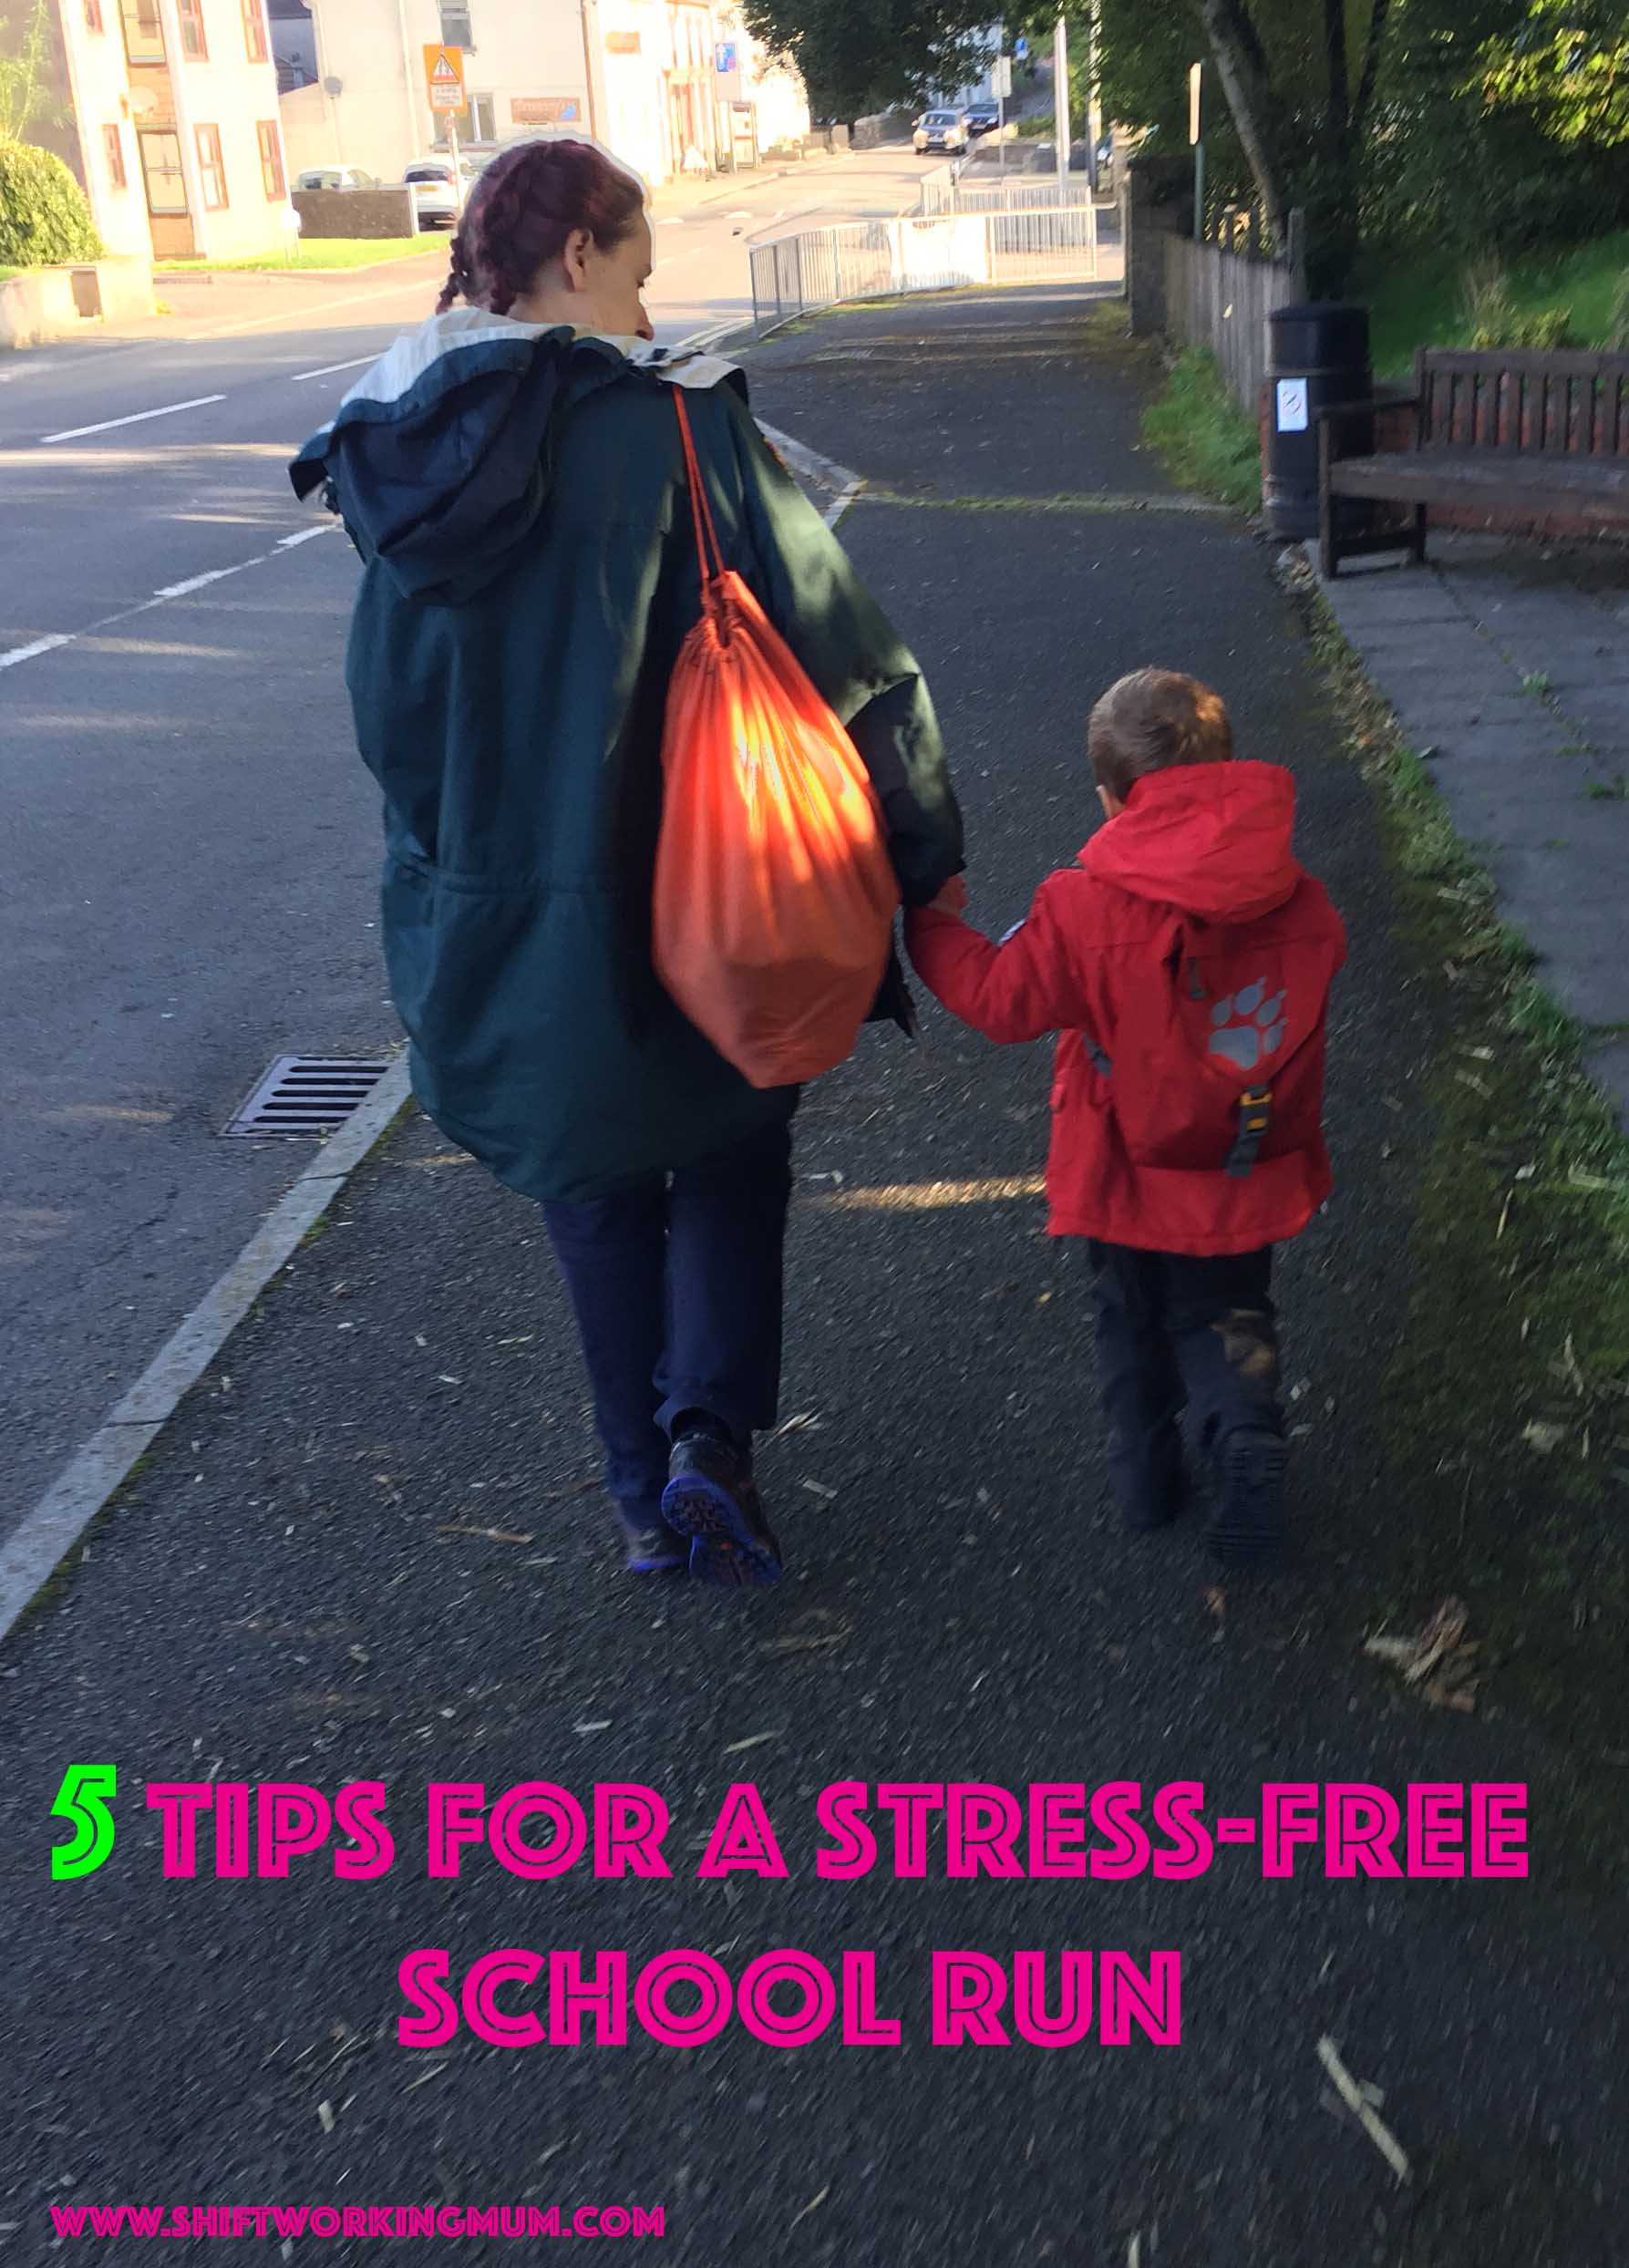 5 Tips for a stress-free school run